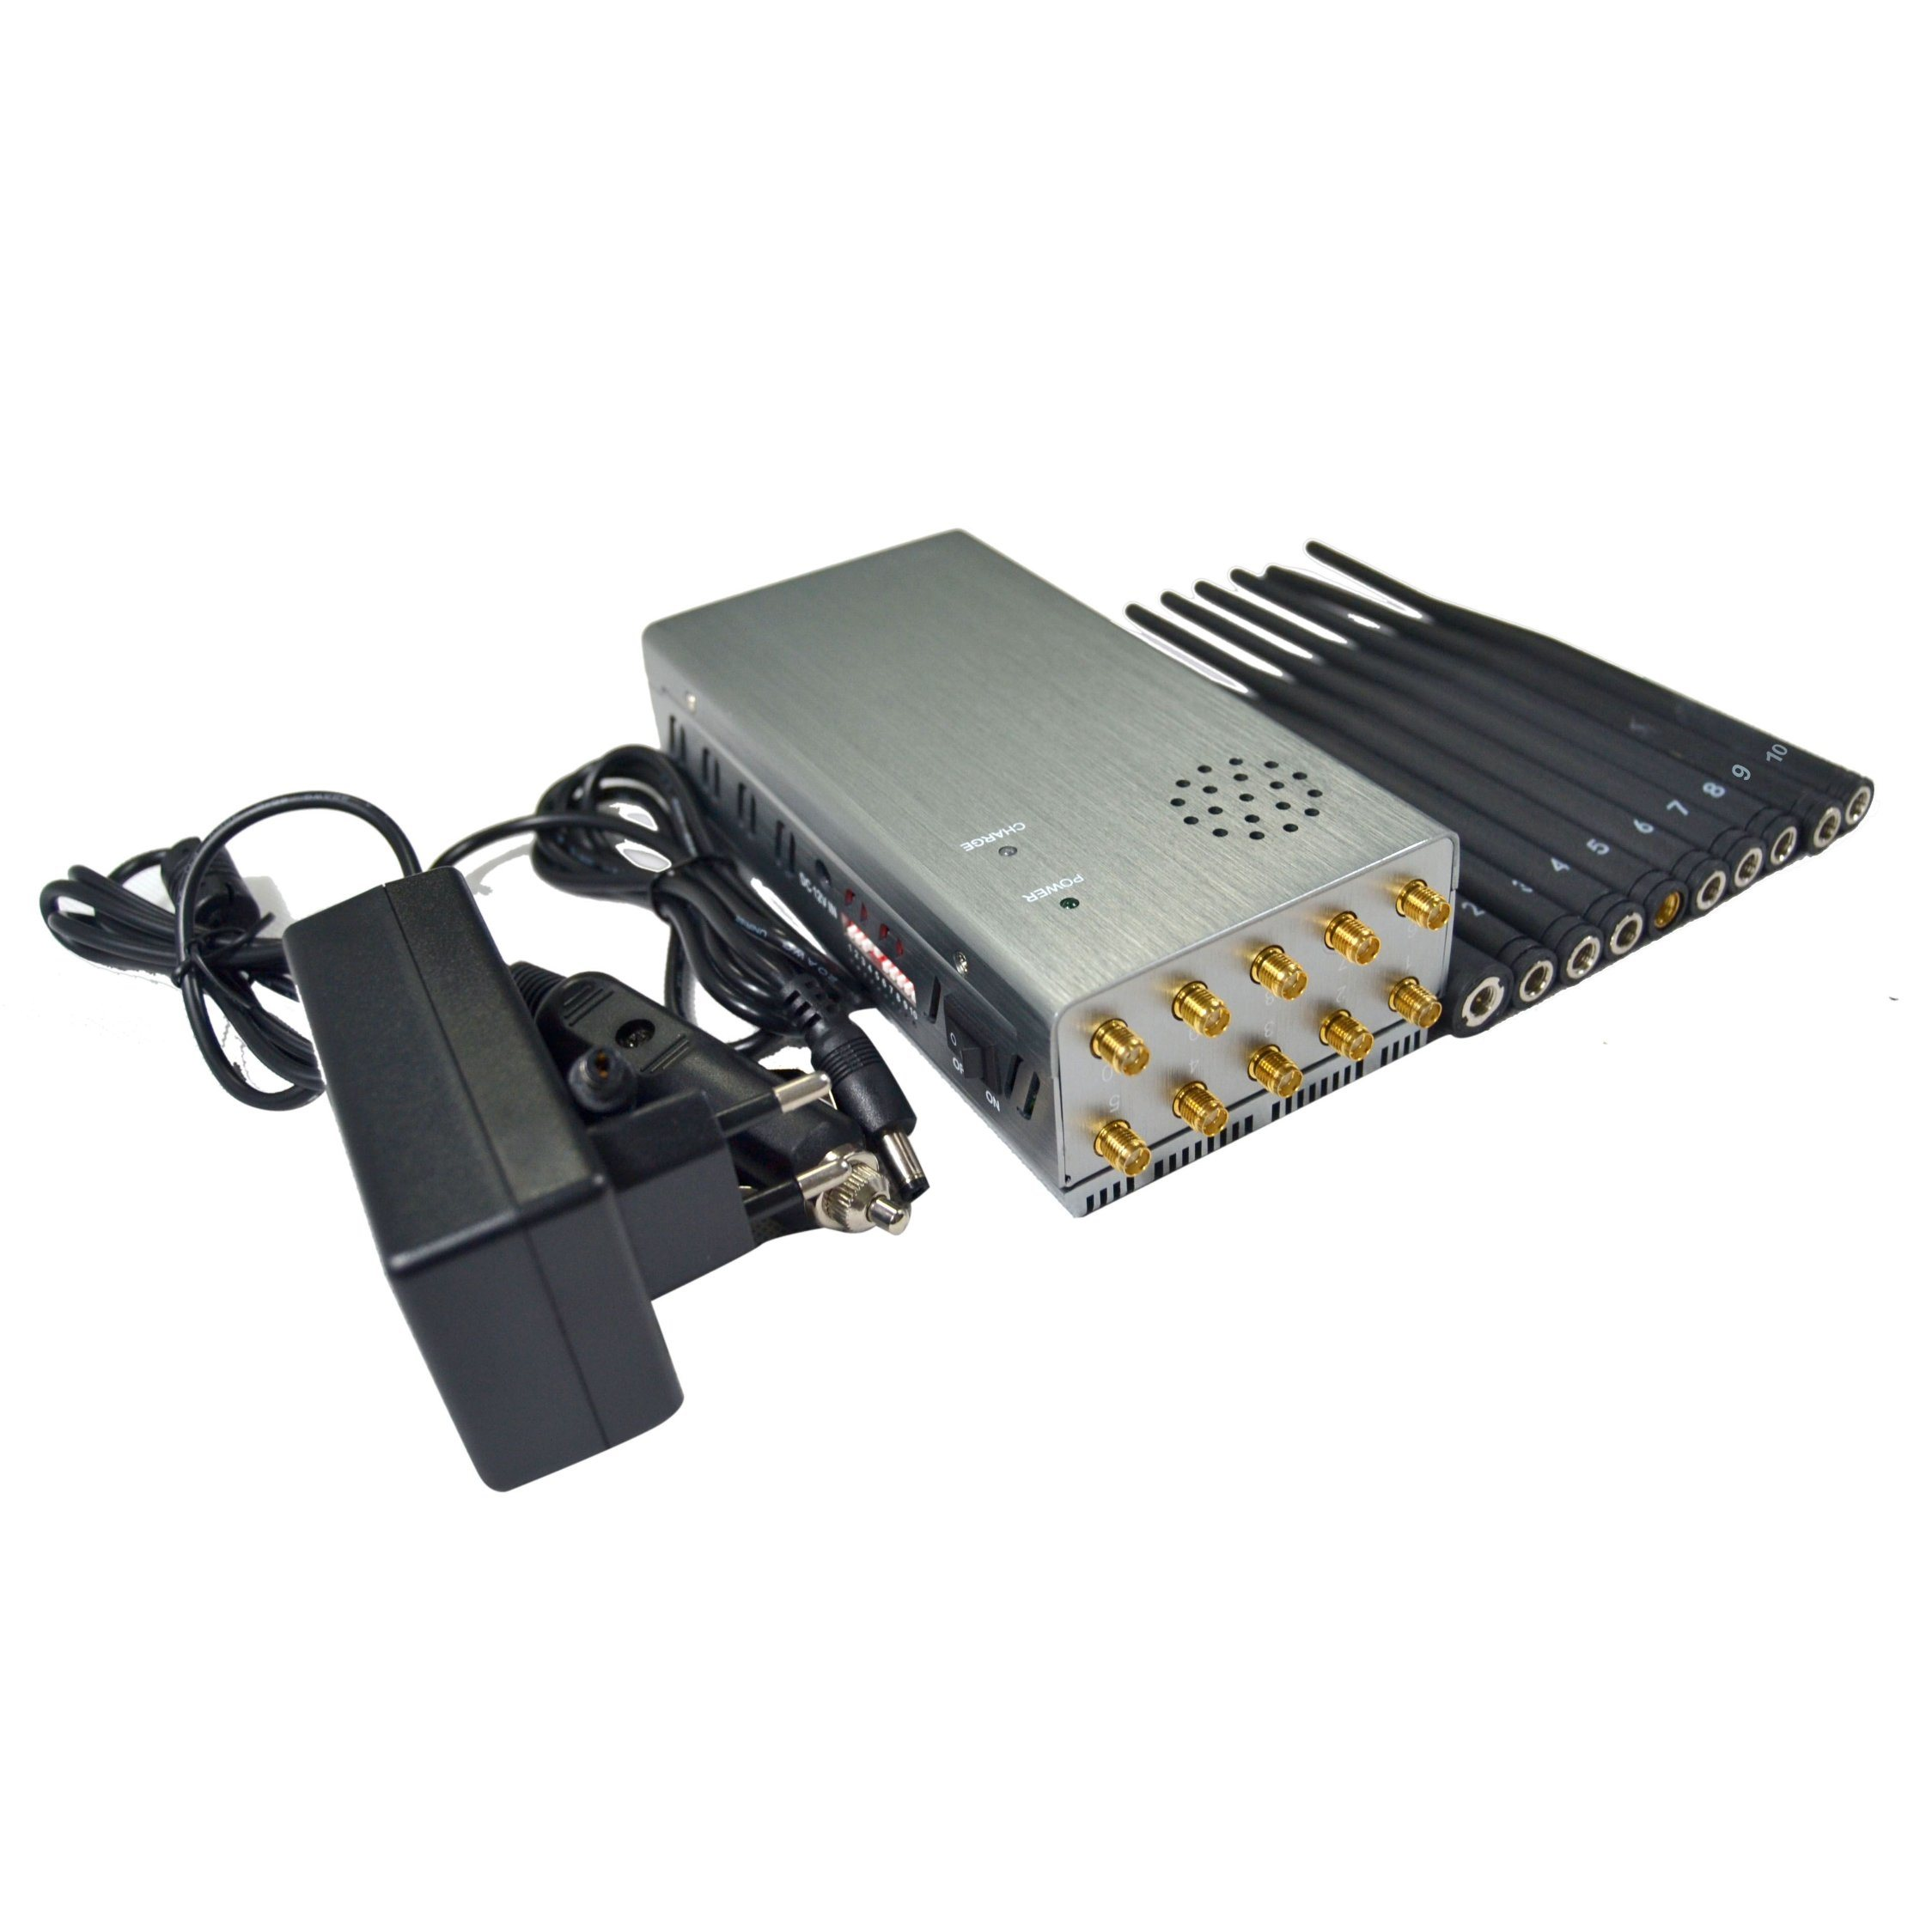 China Lojack 2g 3G 4G 5g GPS 433MHz315MHz868MHz Full Band up to 10 Antennas Signal Blocker - China 8000mA Battery Jammer, Large Volume Power Signal Blocker